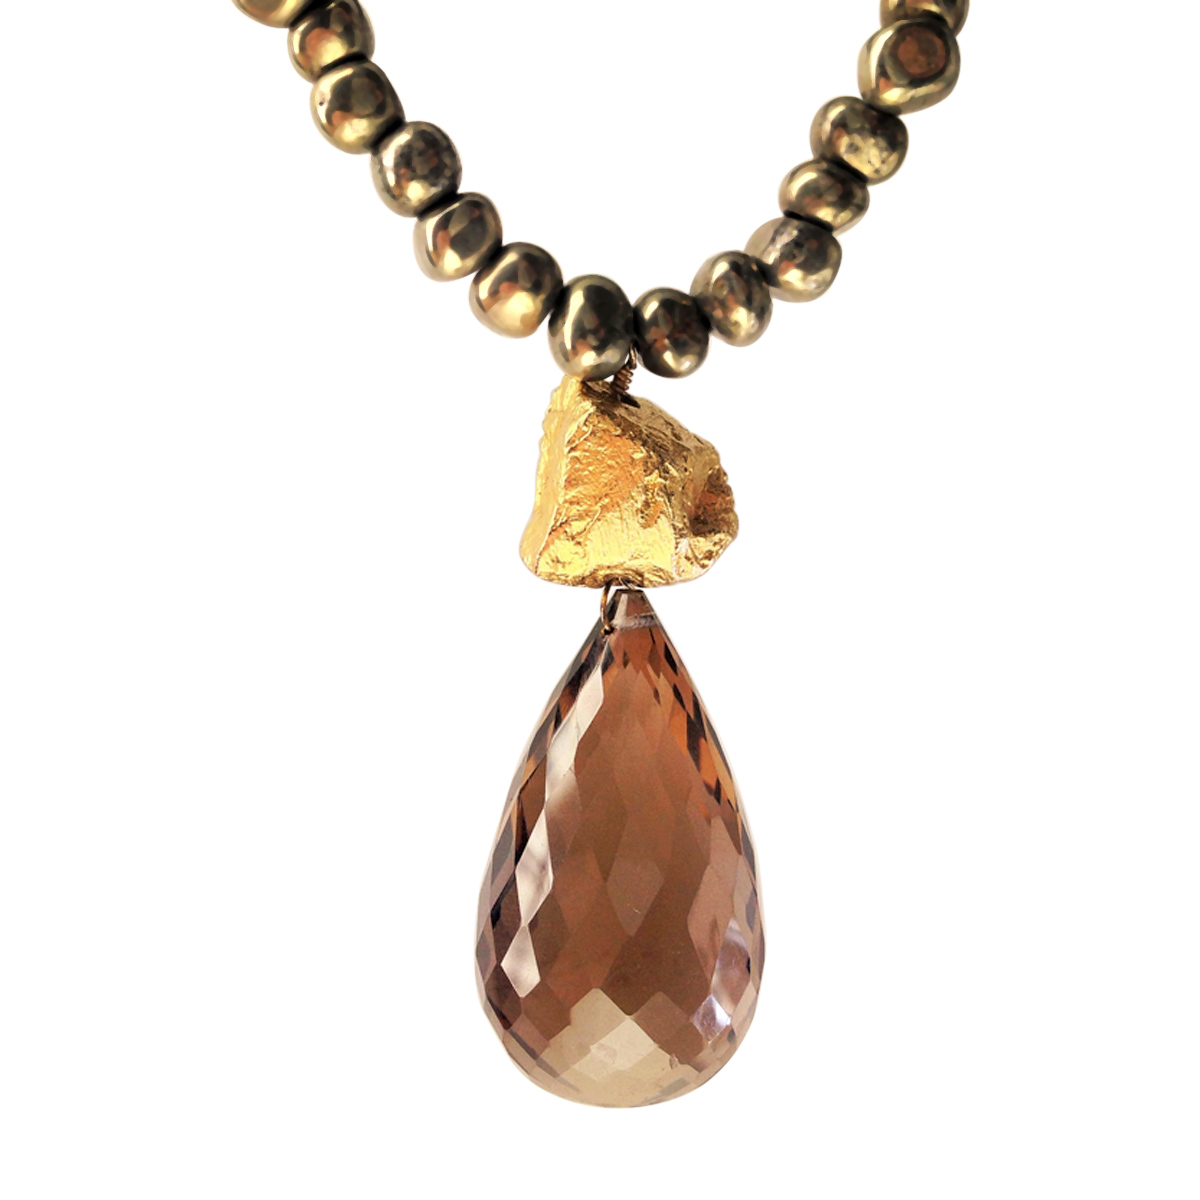 Boulder smoky quartz necklace